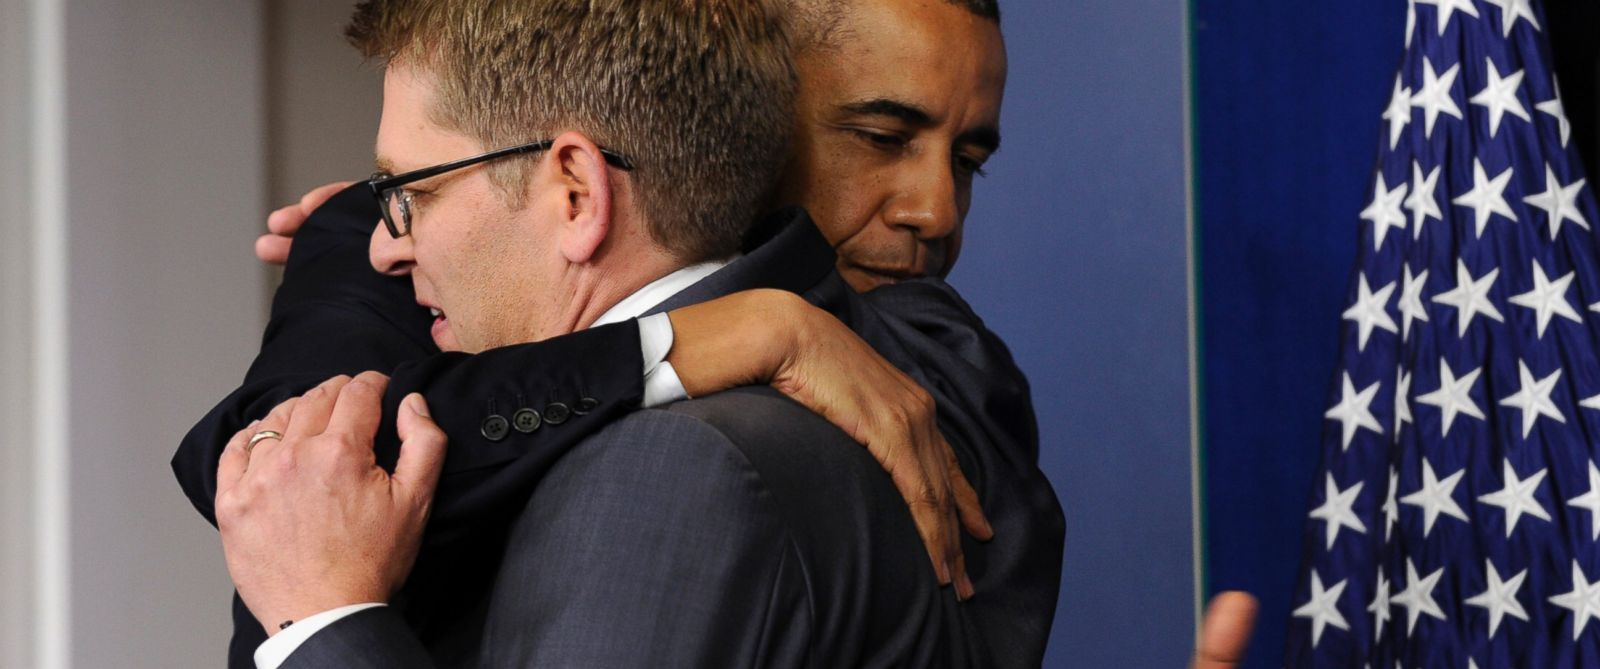 PHOTO: President Barack Obama gives White House press secretary Jay Carney a hug after announcing that Carney will step down later next month, during a surprise visit to the Brady Press Briefing Room of the White House, May 30, 2014.